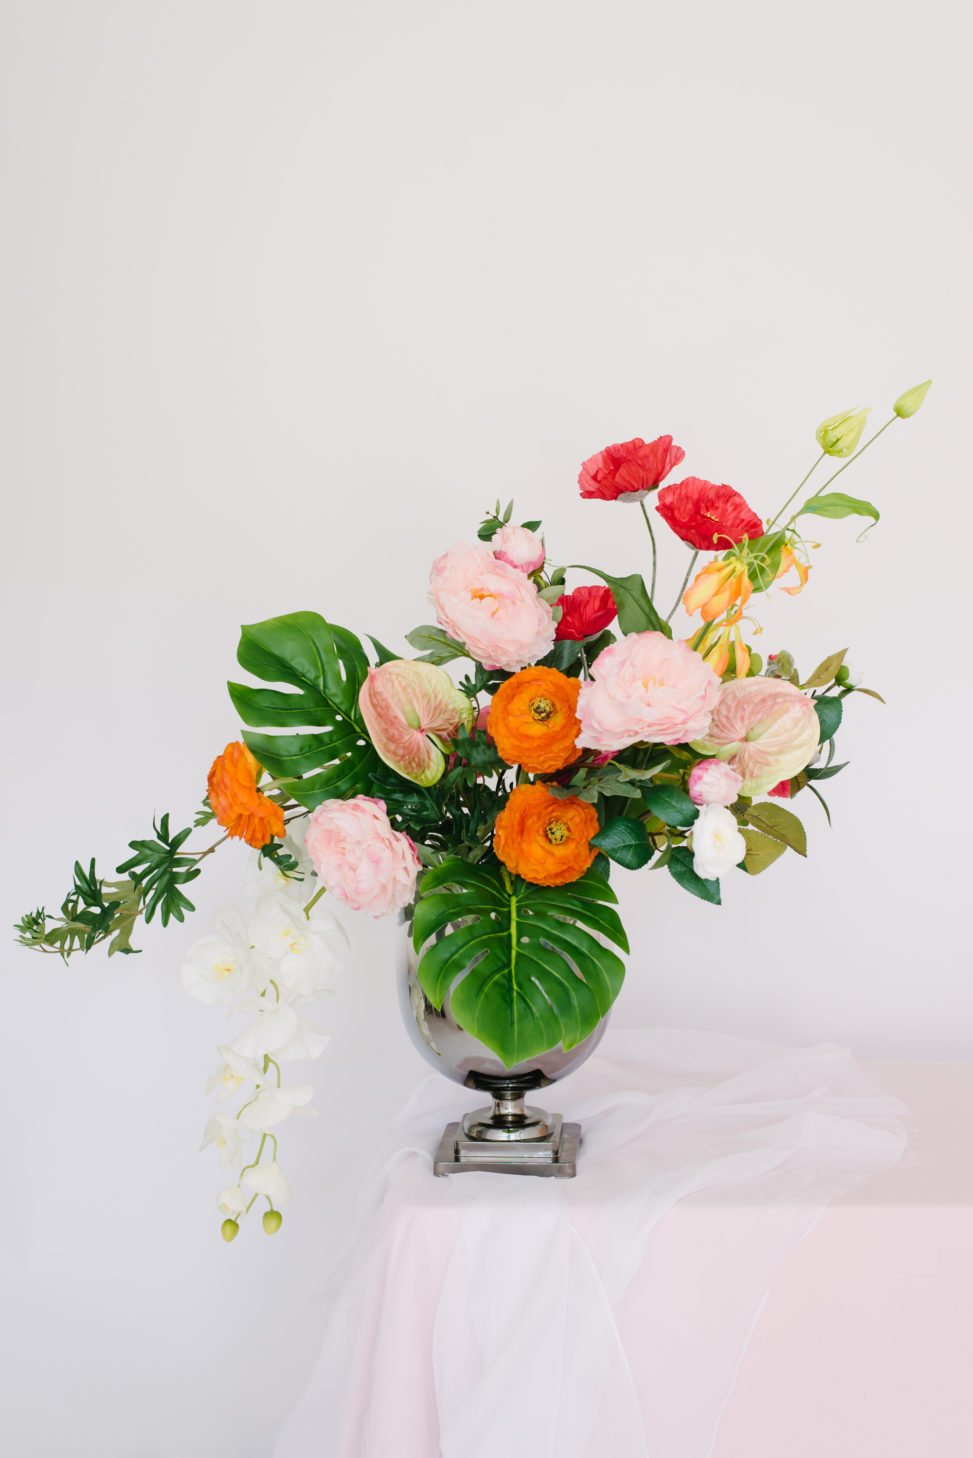 vase with fake floral red, pink, and orange bouquet that looks real on white background